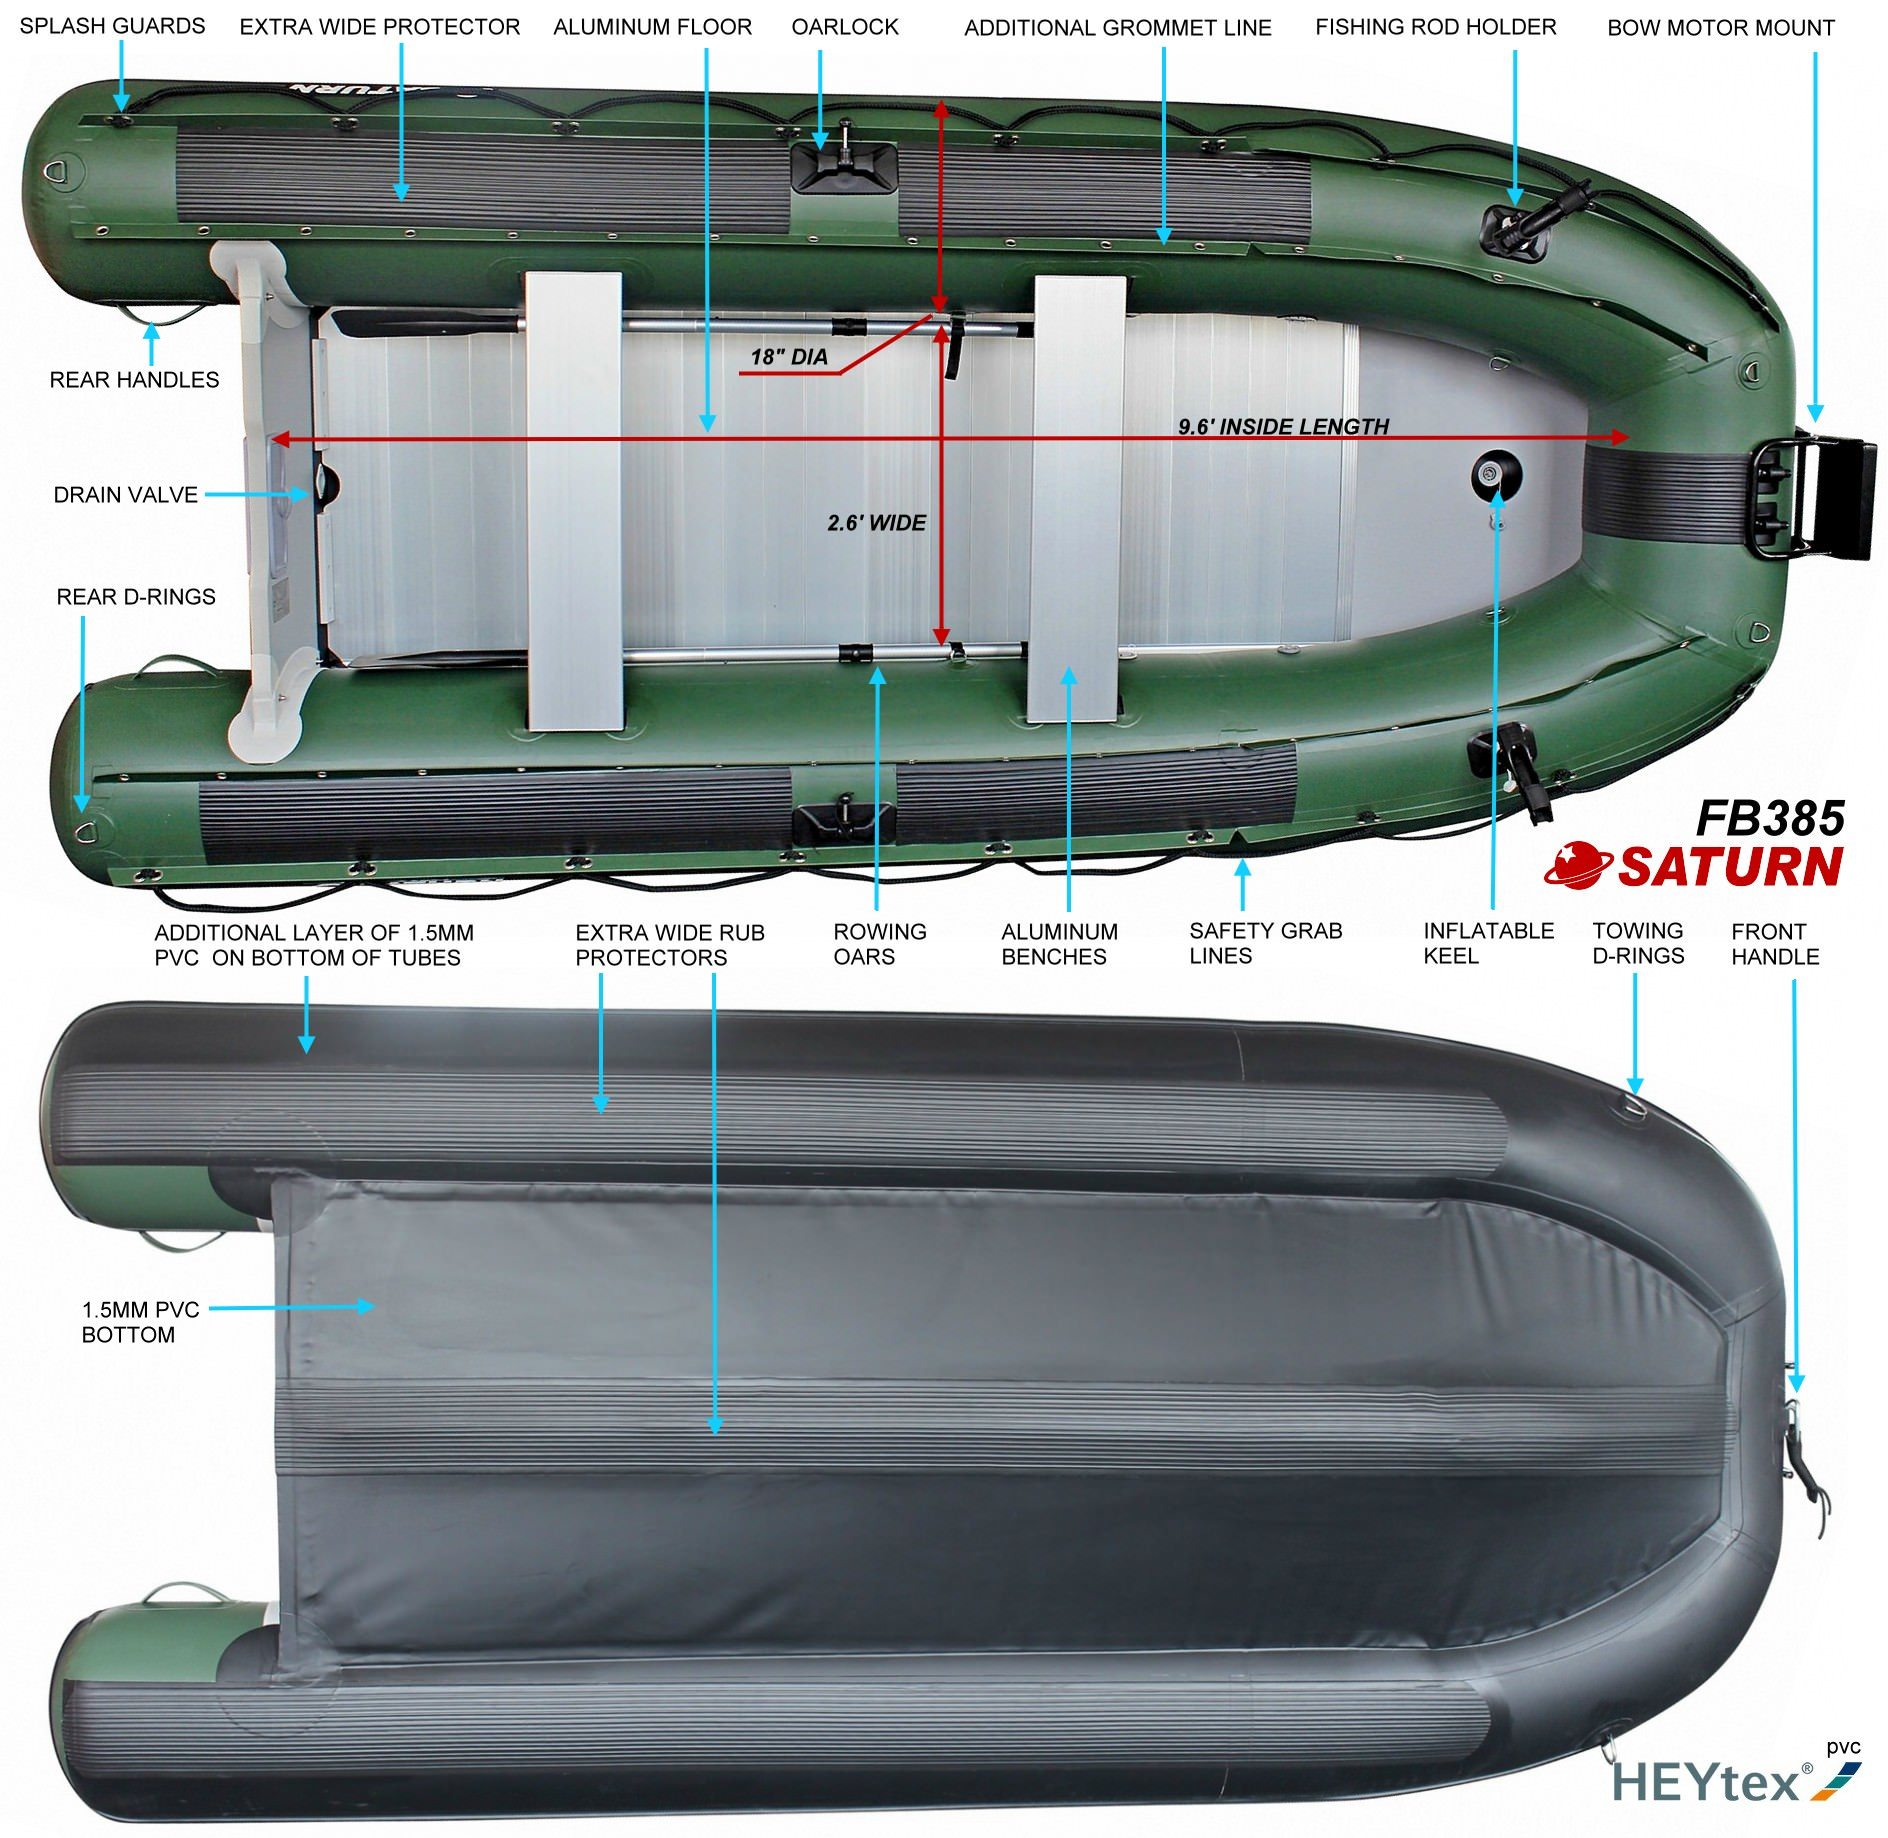 Saturn FB385 inflatable boat specifications